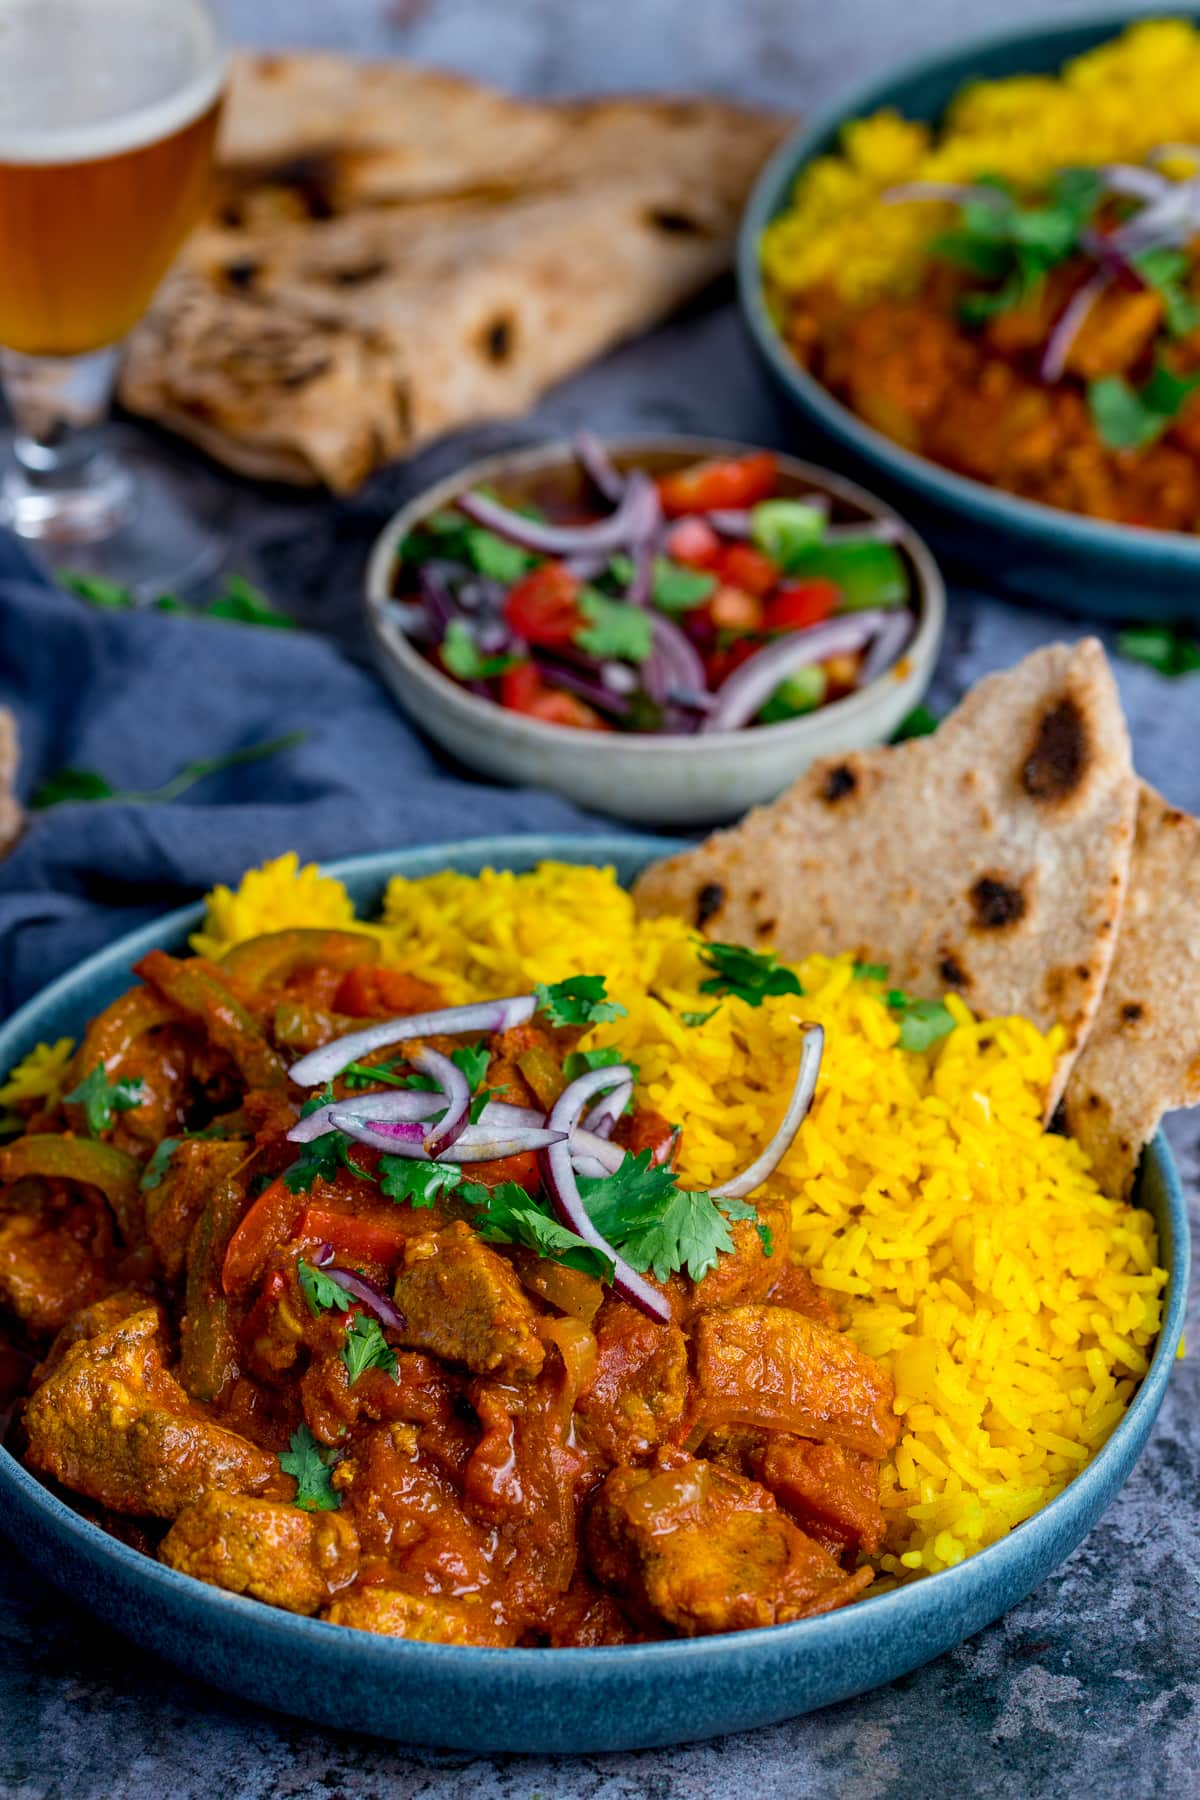 Pilau rice with chicken jalfrezi in a blue bowl on a blue background. Further dishes scattered around.